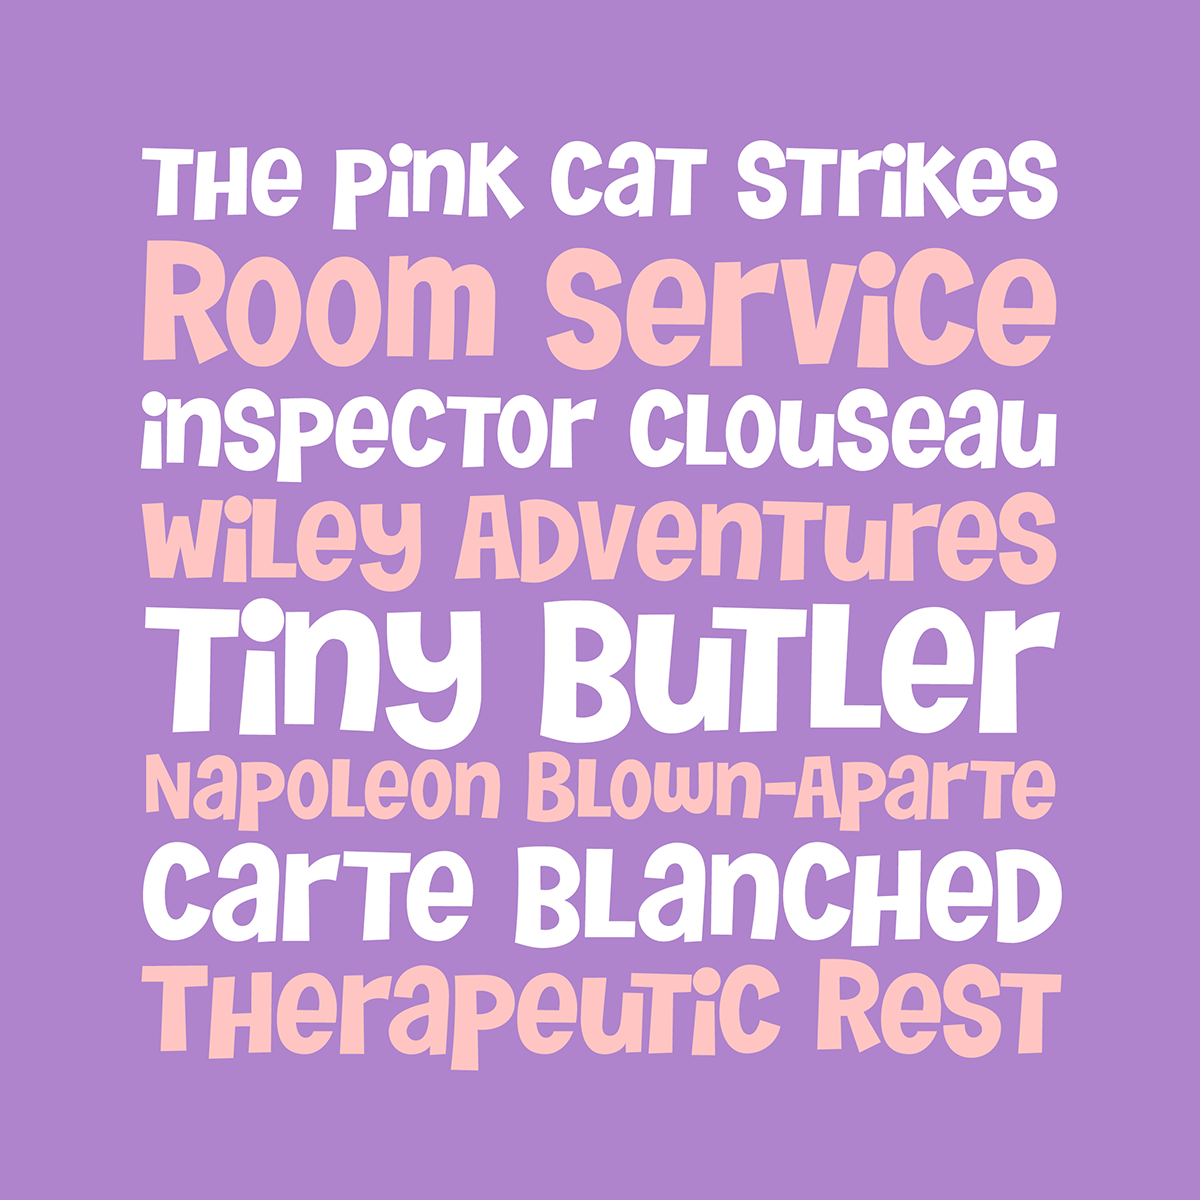 Tiny Butler font by Pink Broccoli